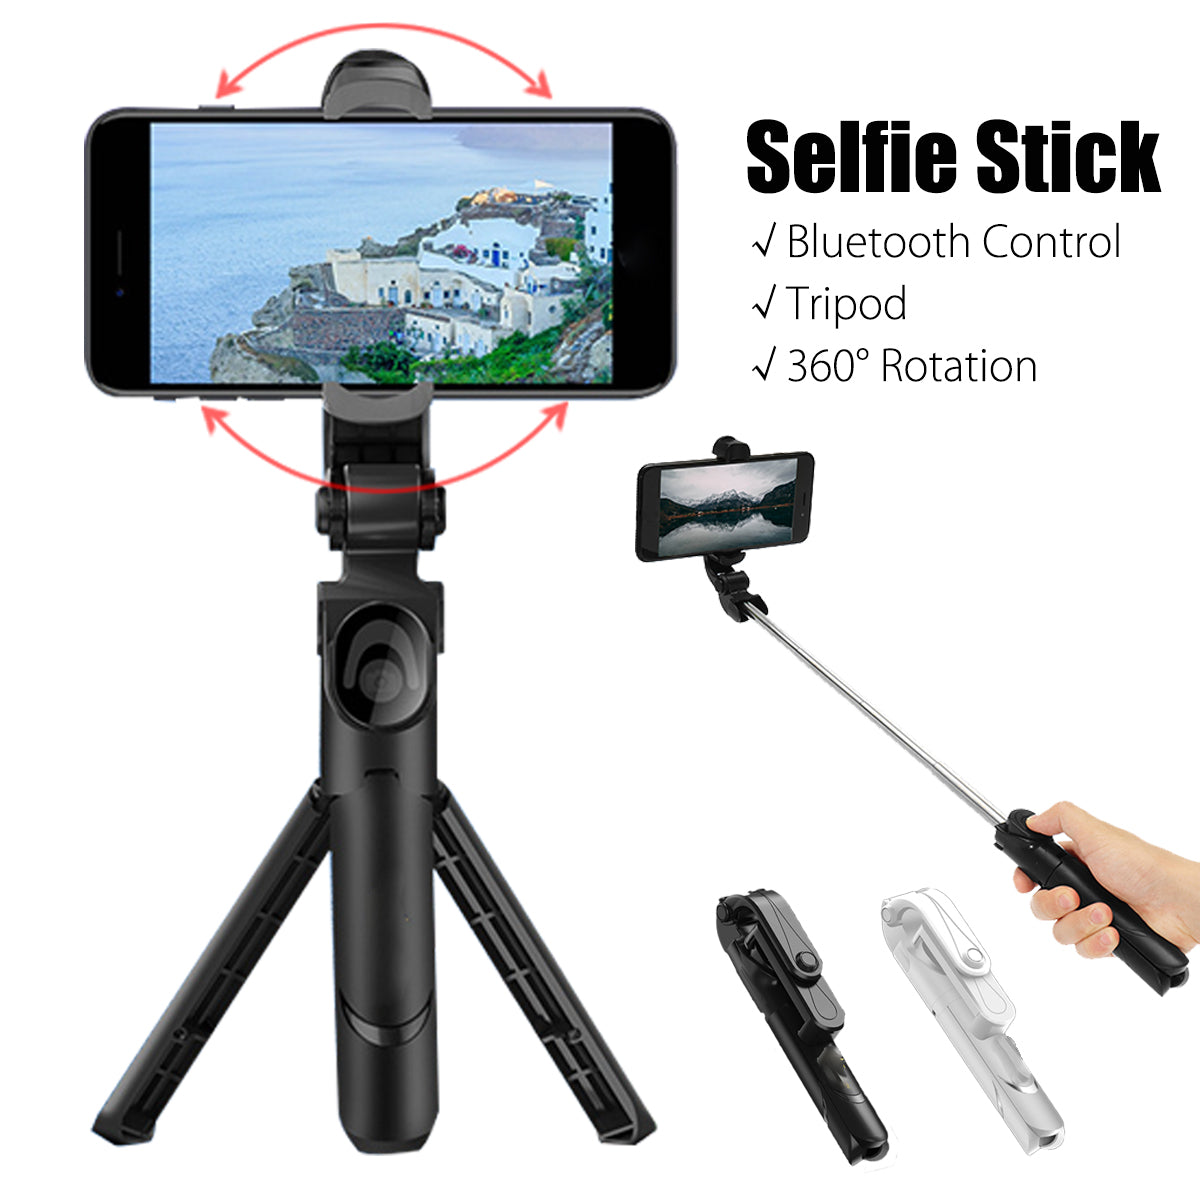 We Selfie™ 360 Degree Selfie Stick Tripod Desktop Phone Holder with Bluetooth Remote Control